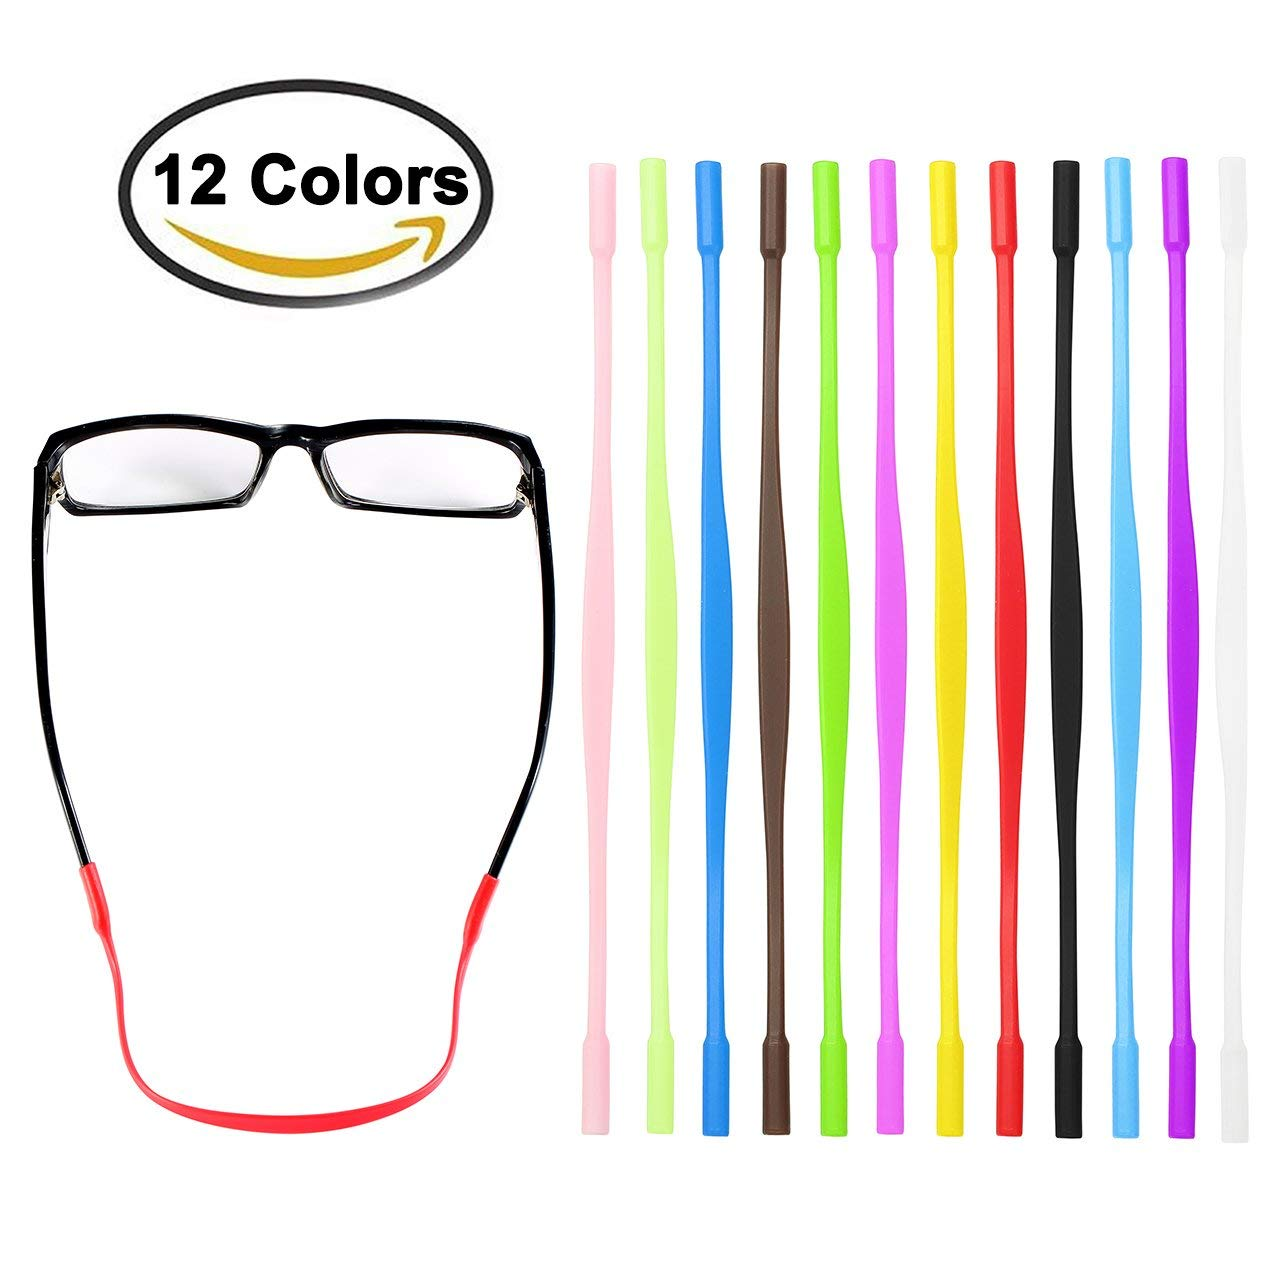 uxcell Silicone Elastic Eyeglasses Straps Sports Band Cord Holder